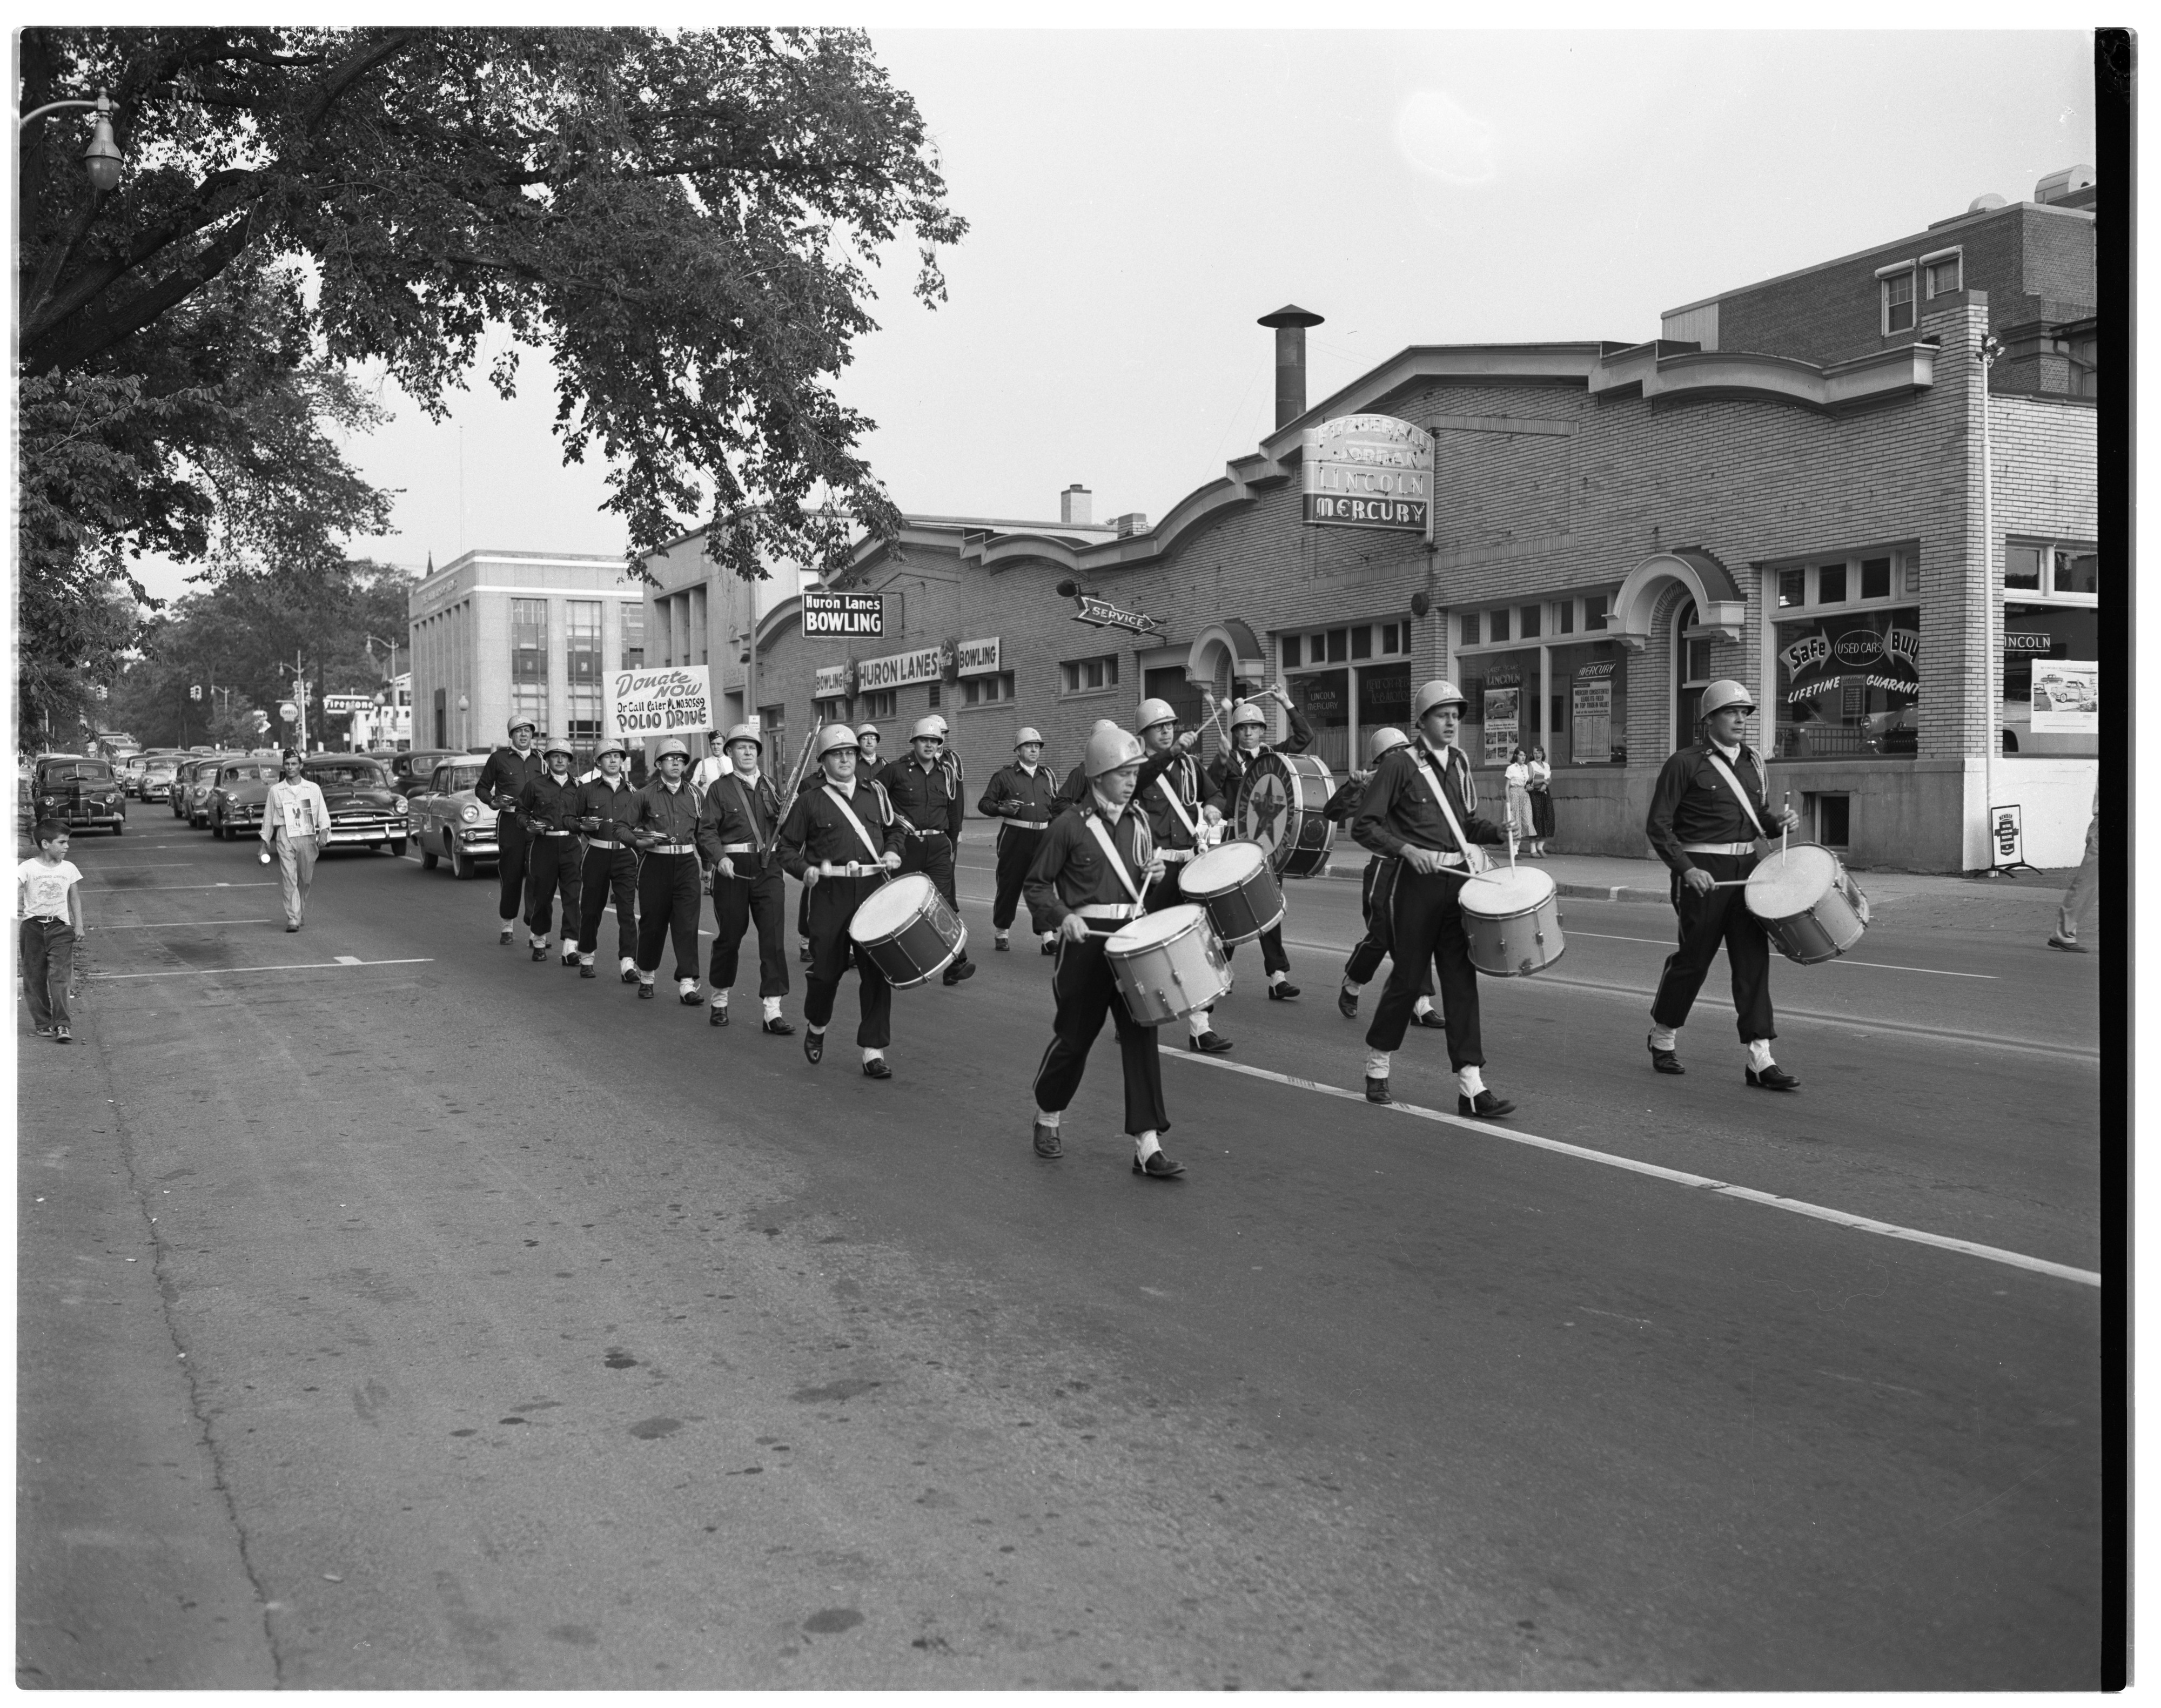 Polio Drive: American Legion Drum and Bugle Corps parade, August 1954 image